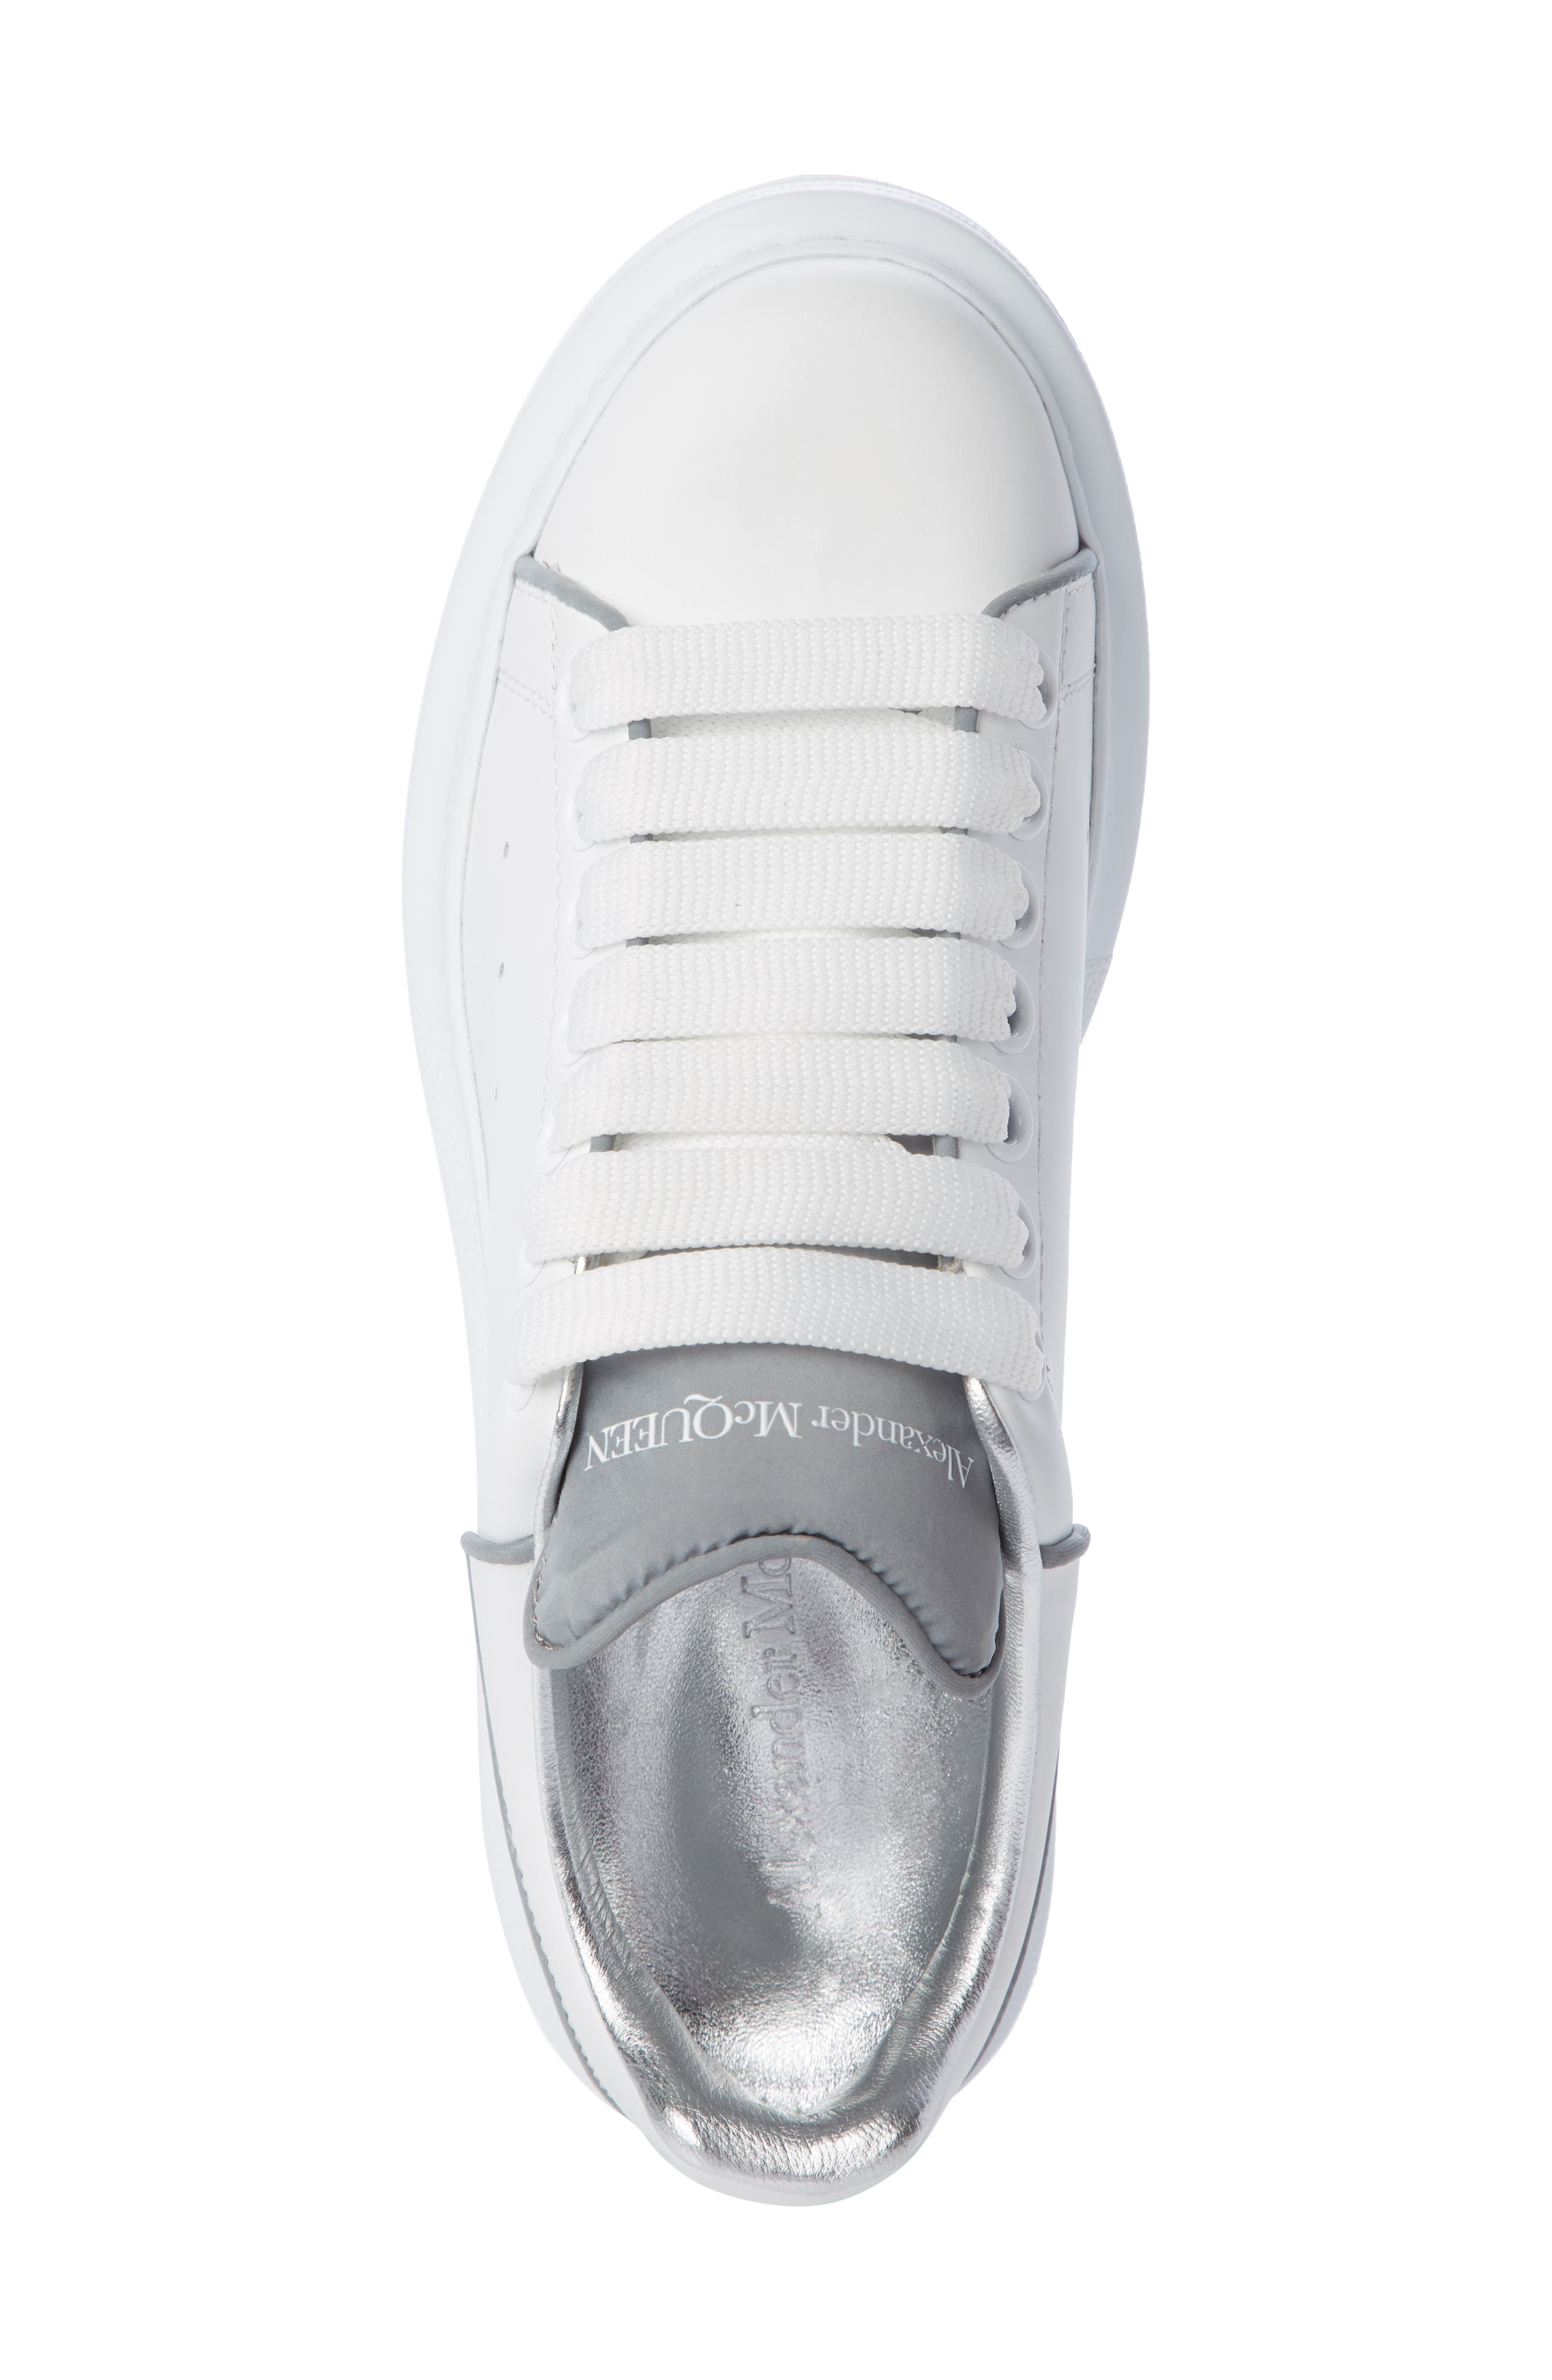 ALEXANDER MCQUEEN,                             Sneaker,                             Alternate thumbnail 4, color,                             WHITE/ SILVER PIPING